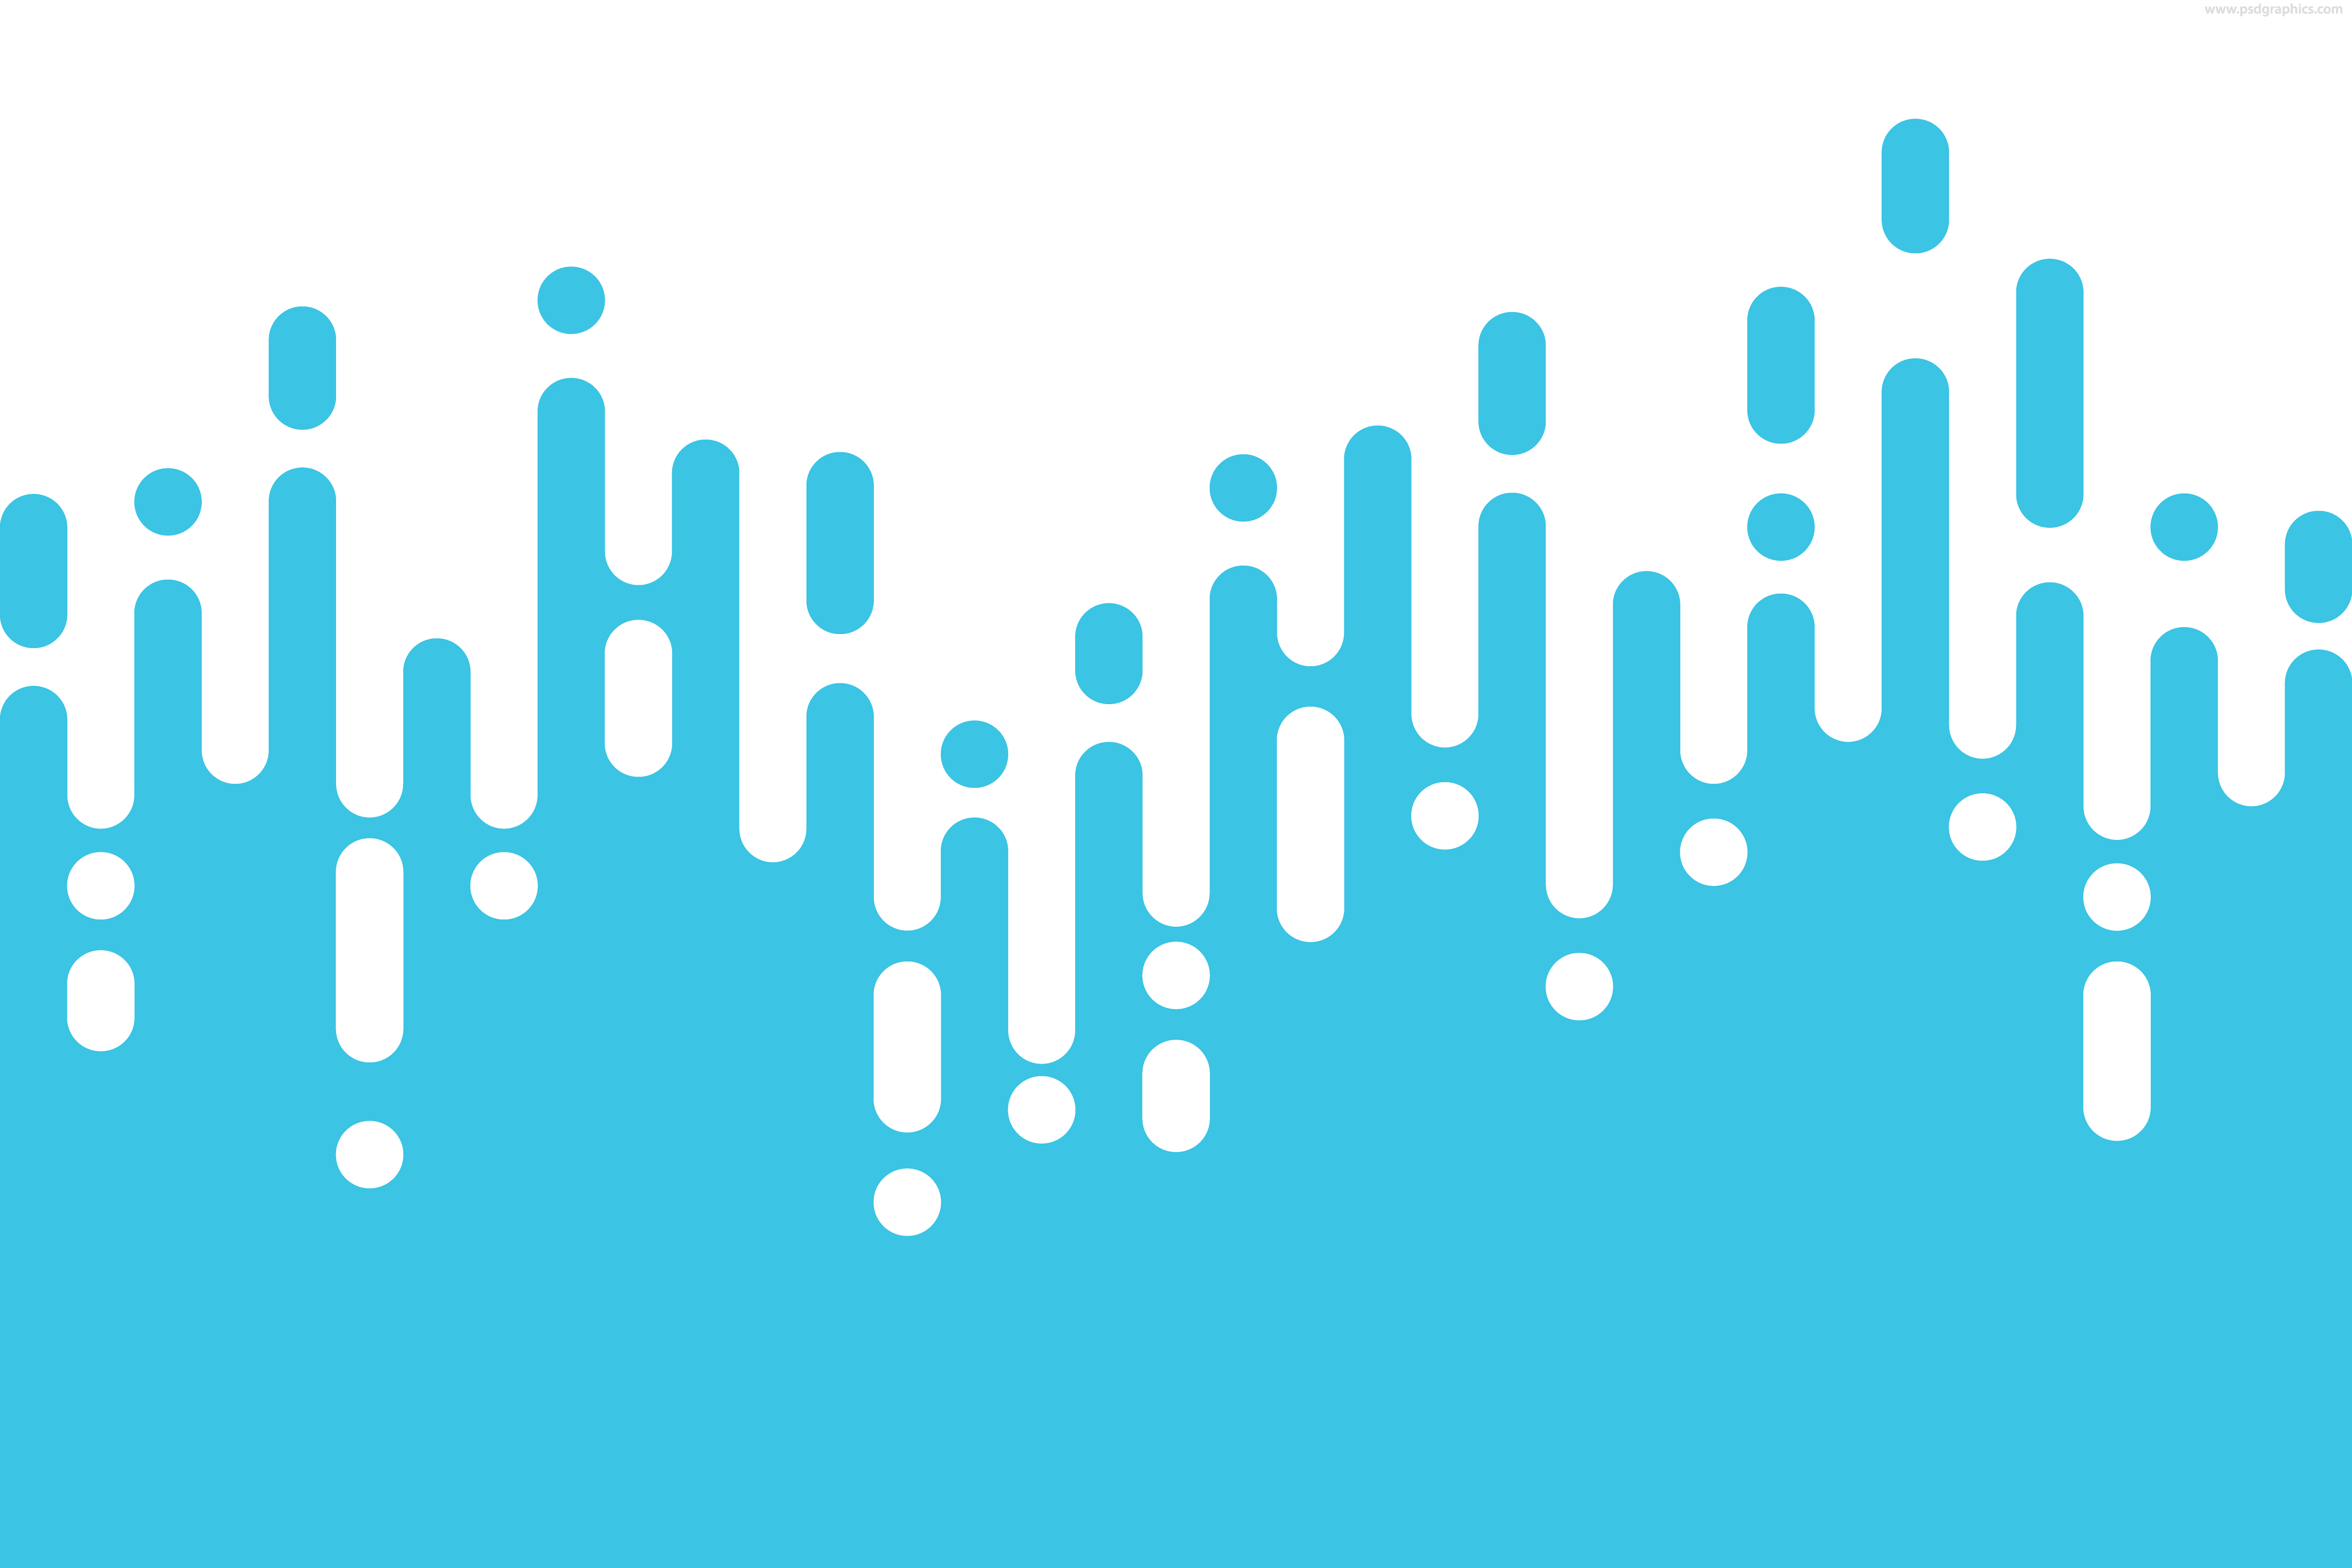 Rounded lines vector pattern.